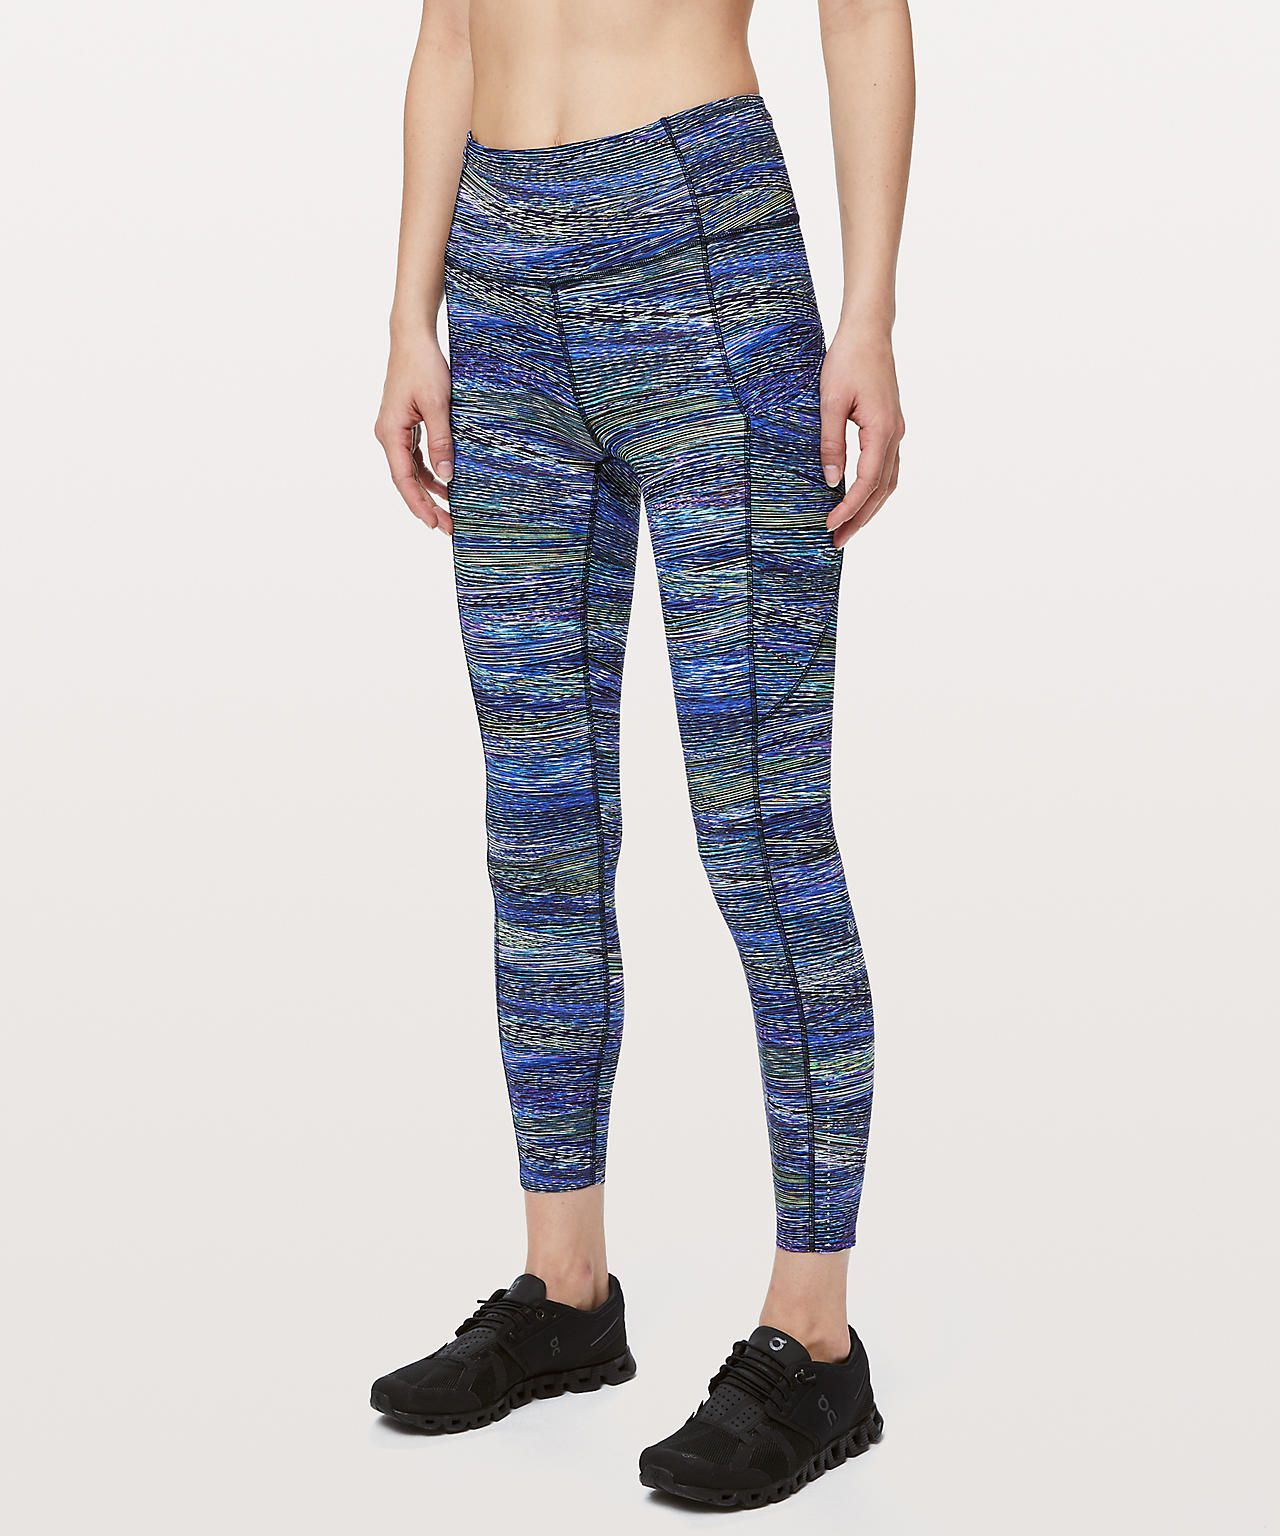 9ccfe54751e2e Best Lululemon Leggings - Why Lululemon Is So Expensive and What To Buy